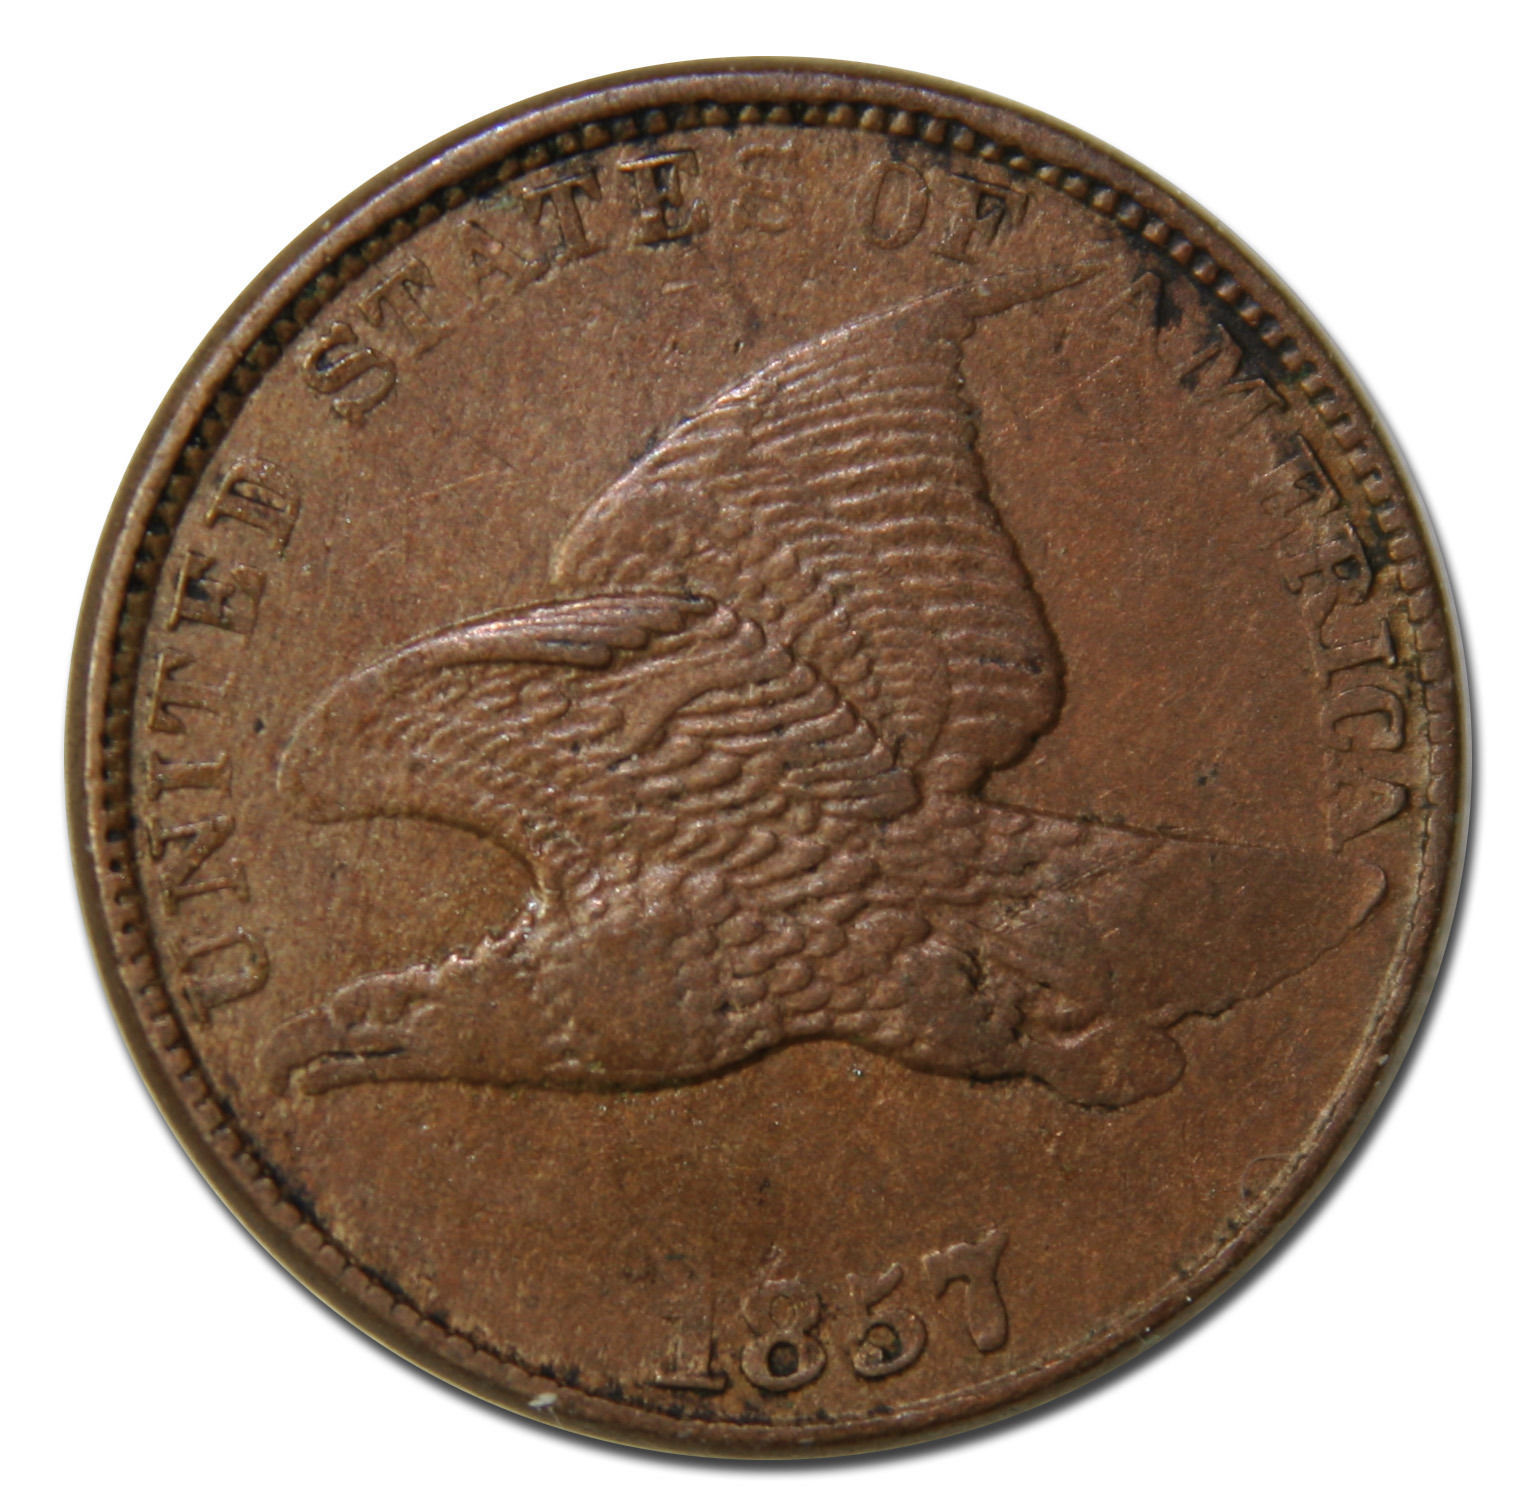 1857  Flying Eagle Cent Coin Lot# MZ 3683